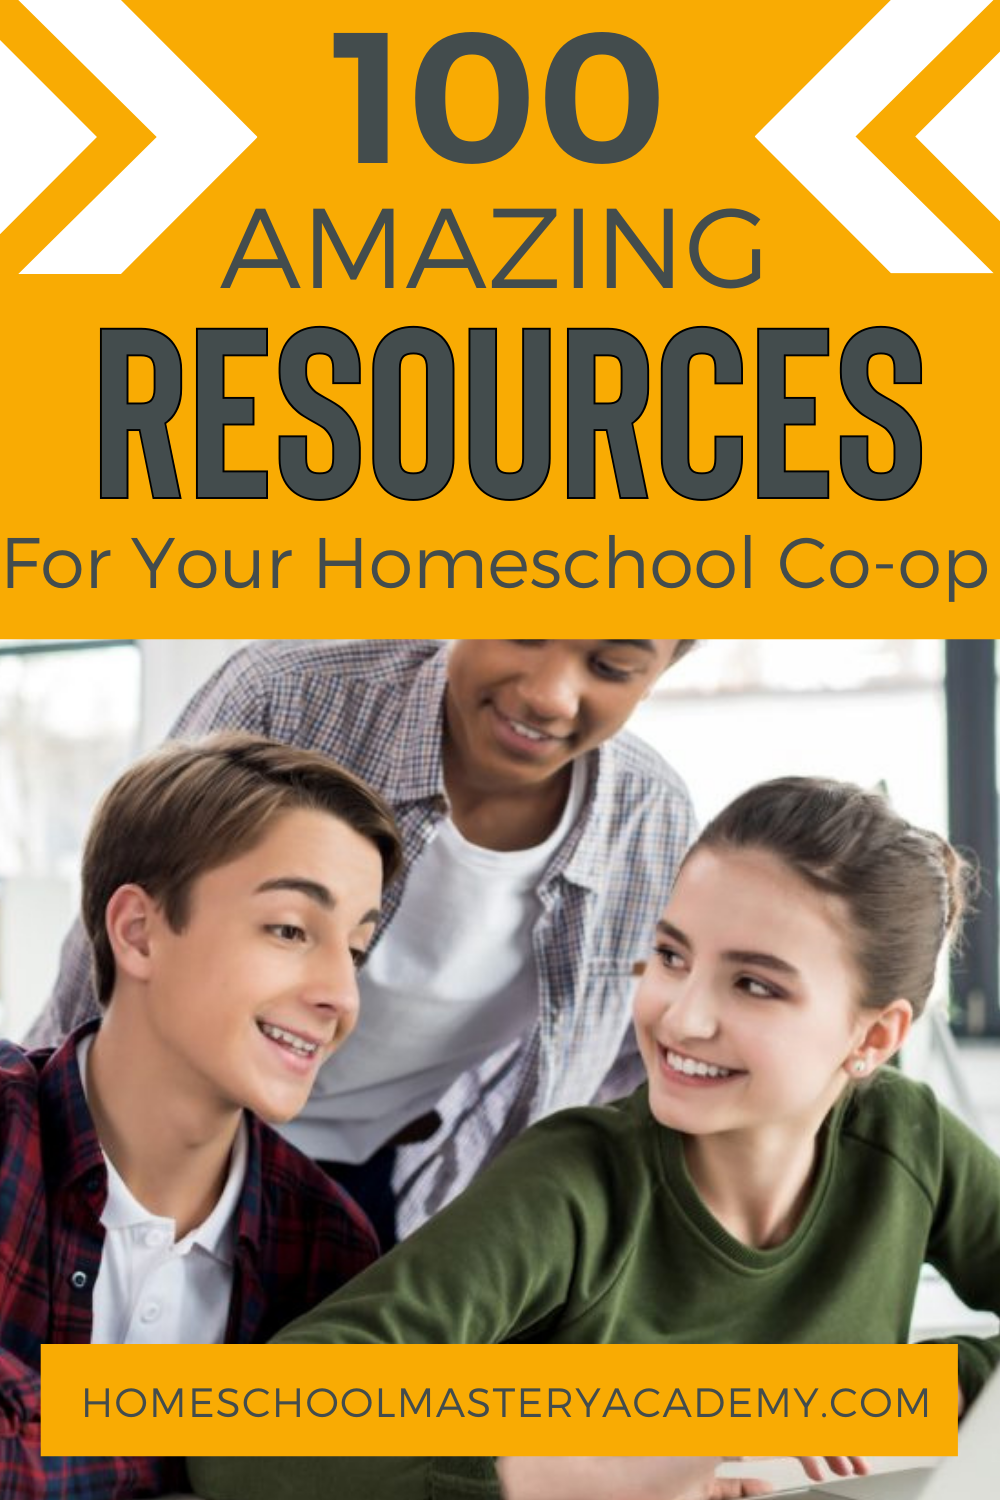 100 Homeschool Co-op and Resource Ideas - Homeschool Group Curriculum, Courses, Books, Activities and More! #homeschoolgroup #homeschoolcoop #homeschool #homeschoolideas